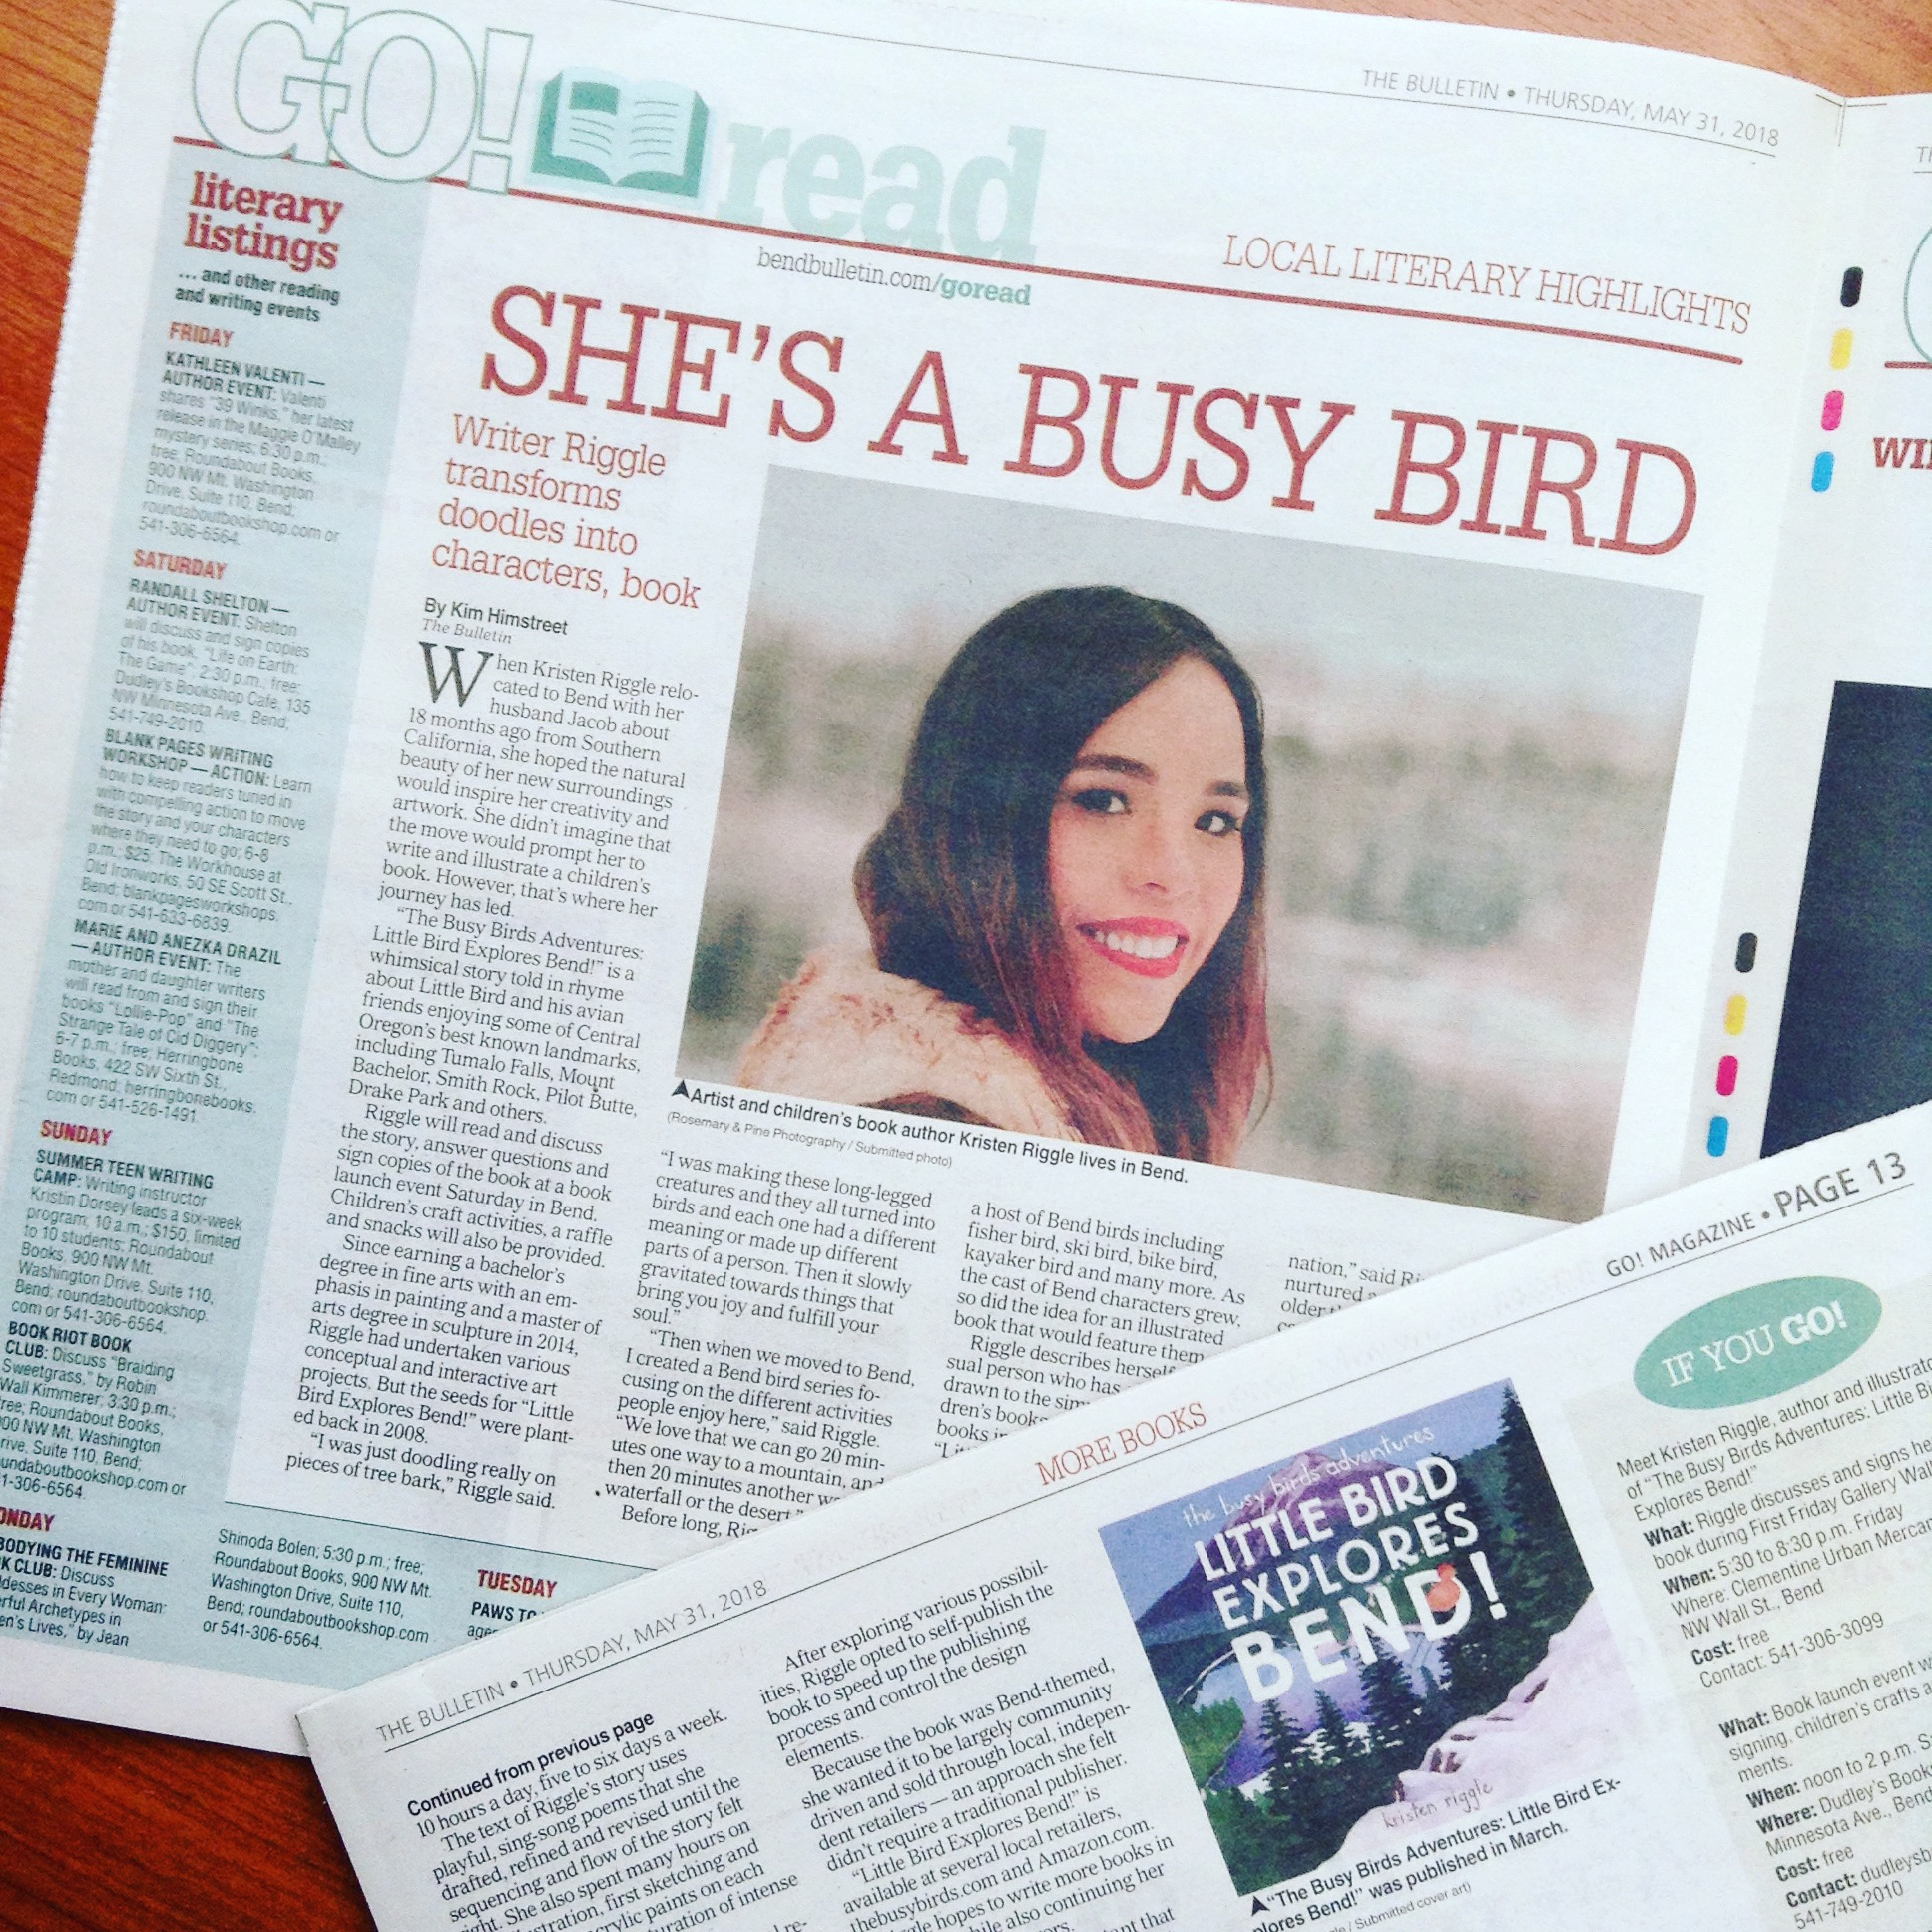 Go! Magazine by Bend Bulletin - An article written by Kim Himstreet that explains my picture book journey from beginning to the launch of Little Bird Explores Bend! (2018)